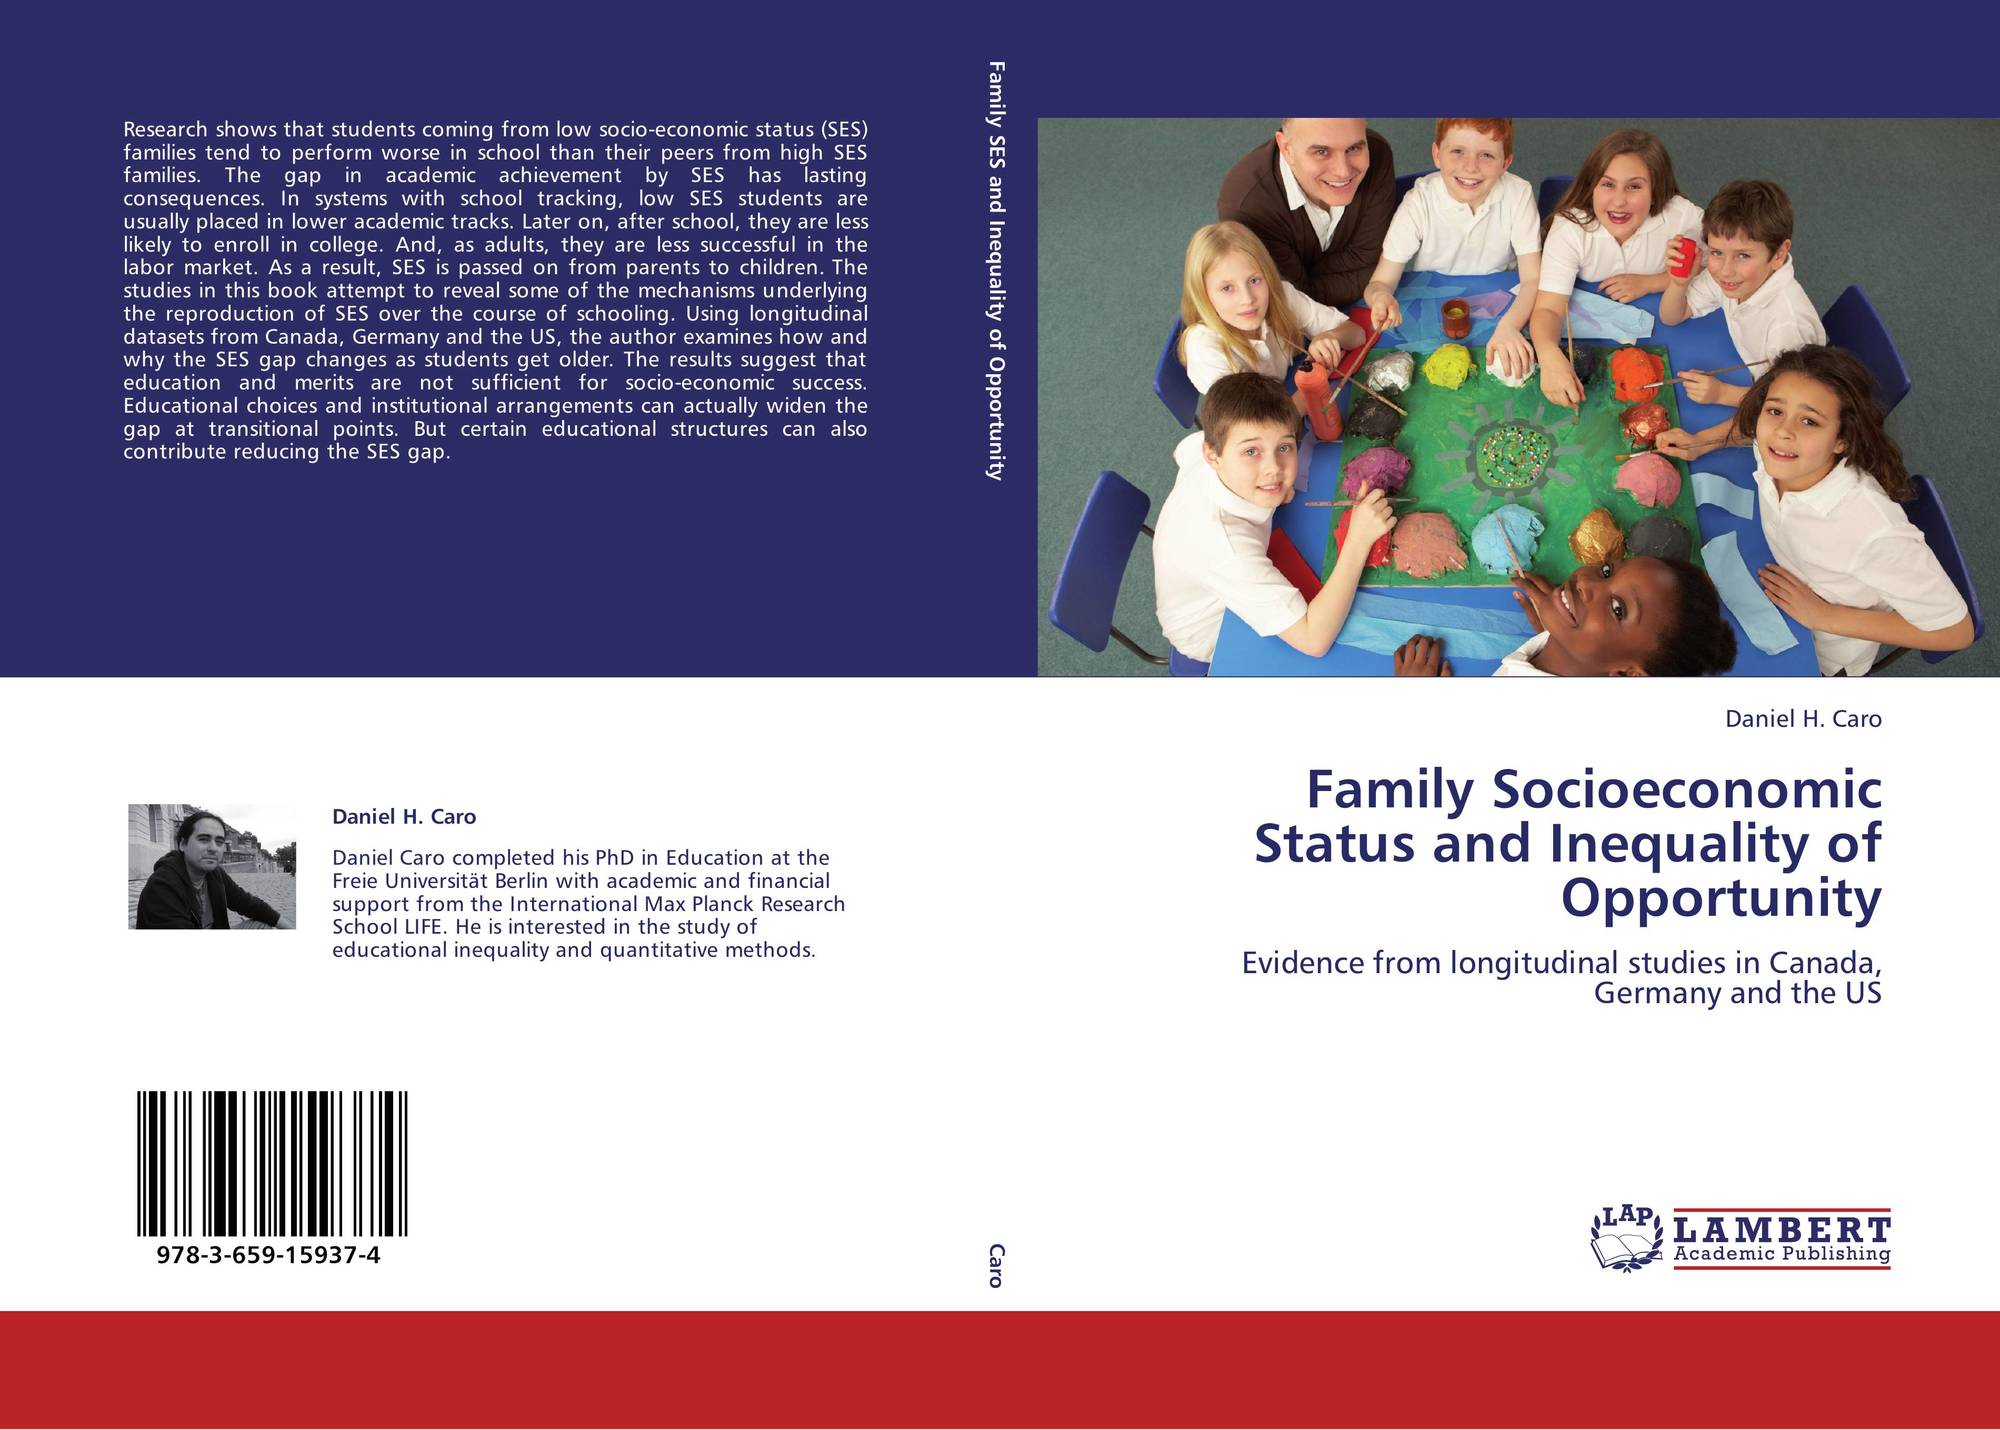 management functions and family economics status Explain the social functions of the family through the perspective of structural functionalism key takeaways ability or disability, and socio-economic status.